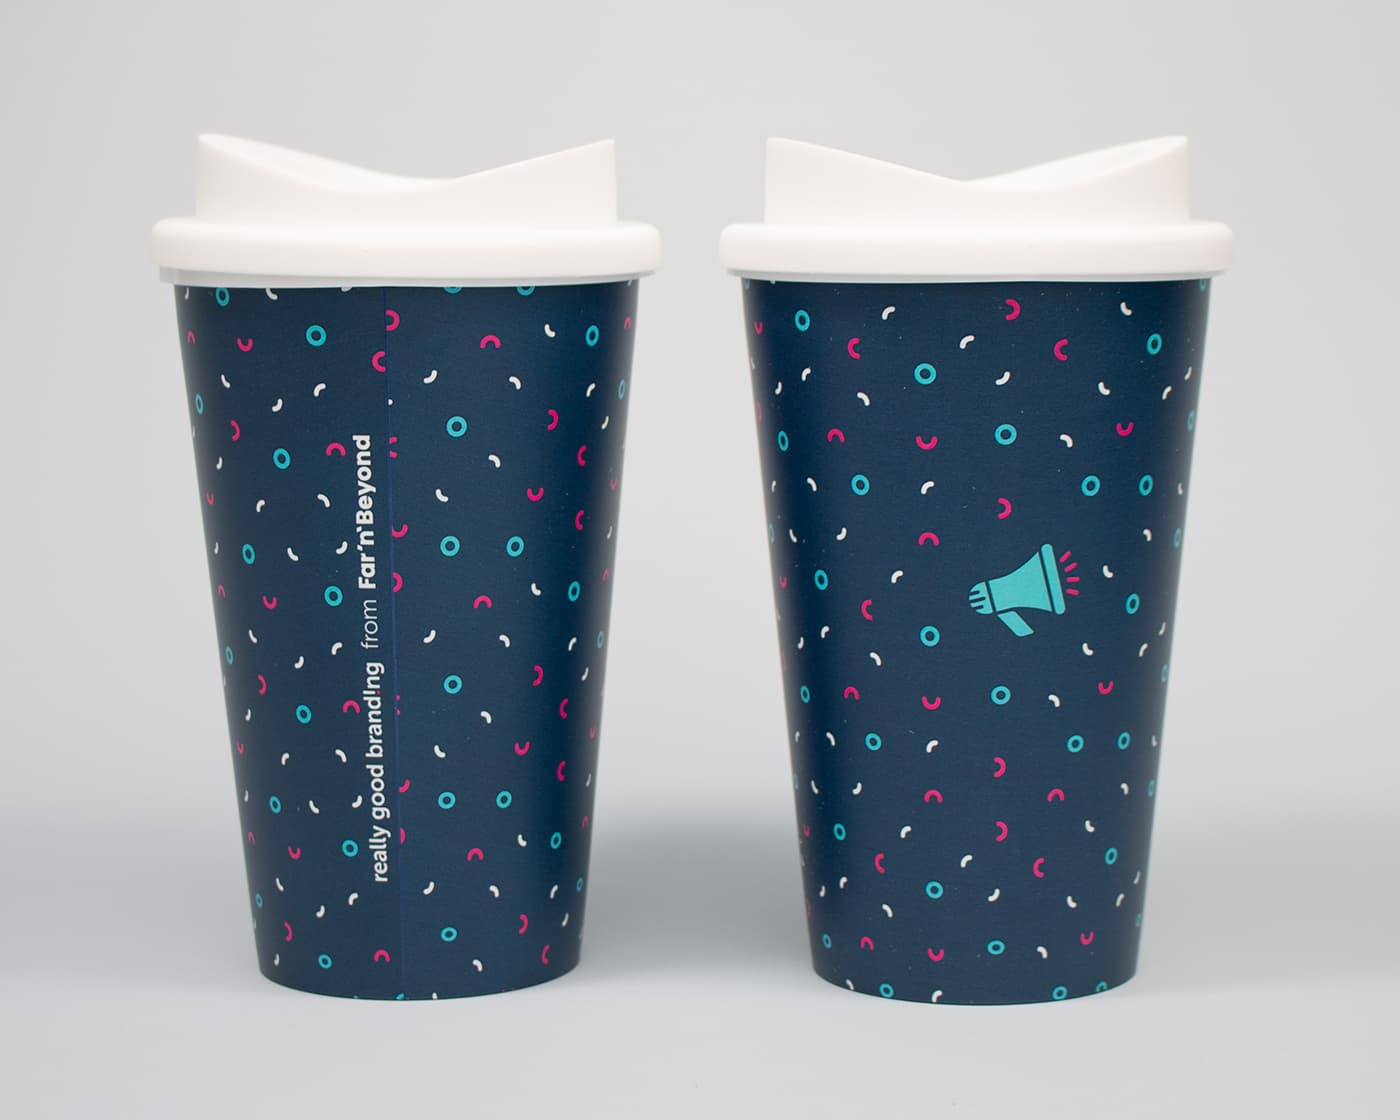 Branded Reusable Coffee Cup Printers